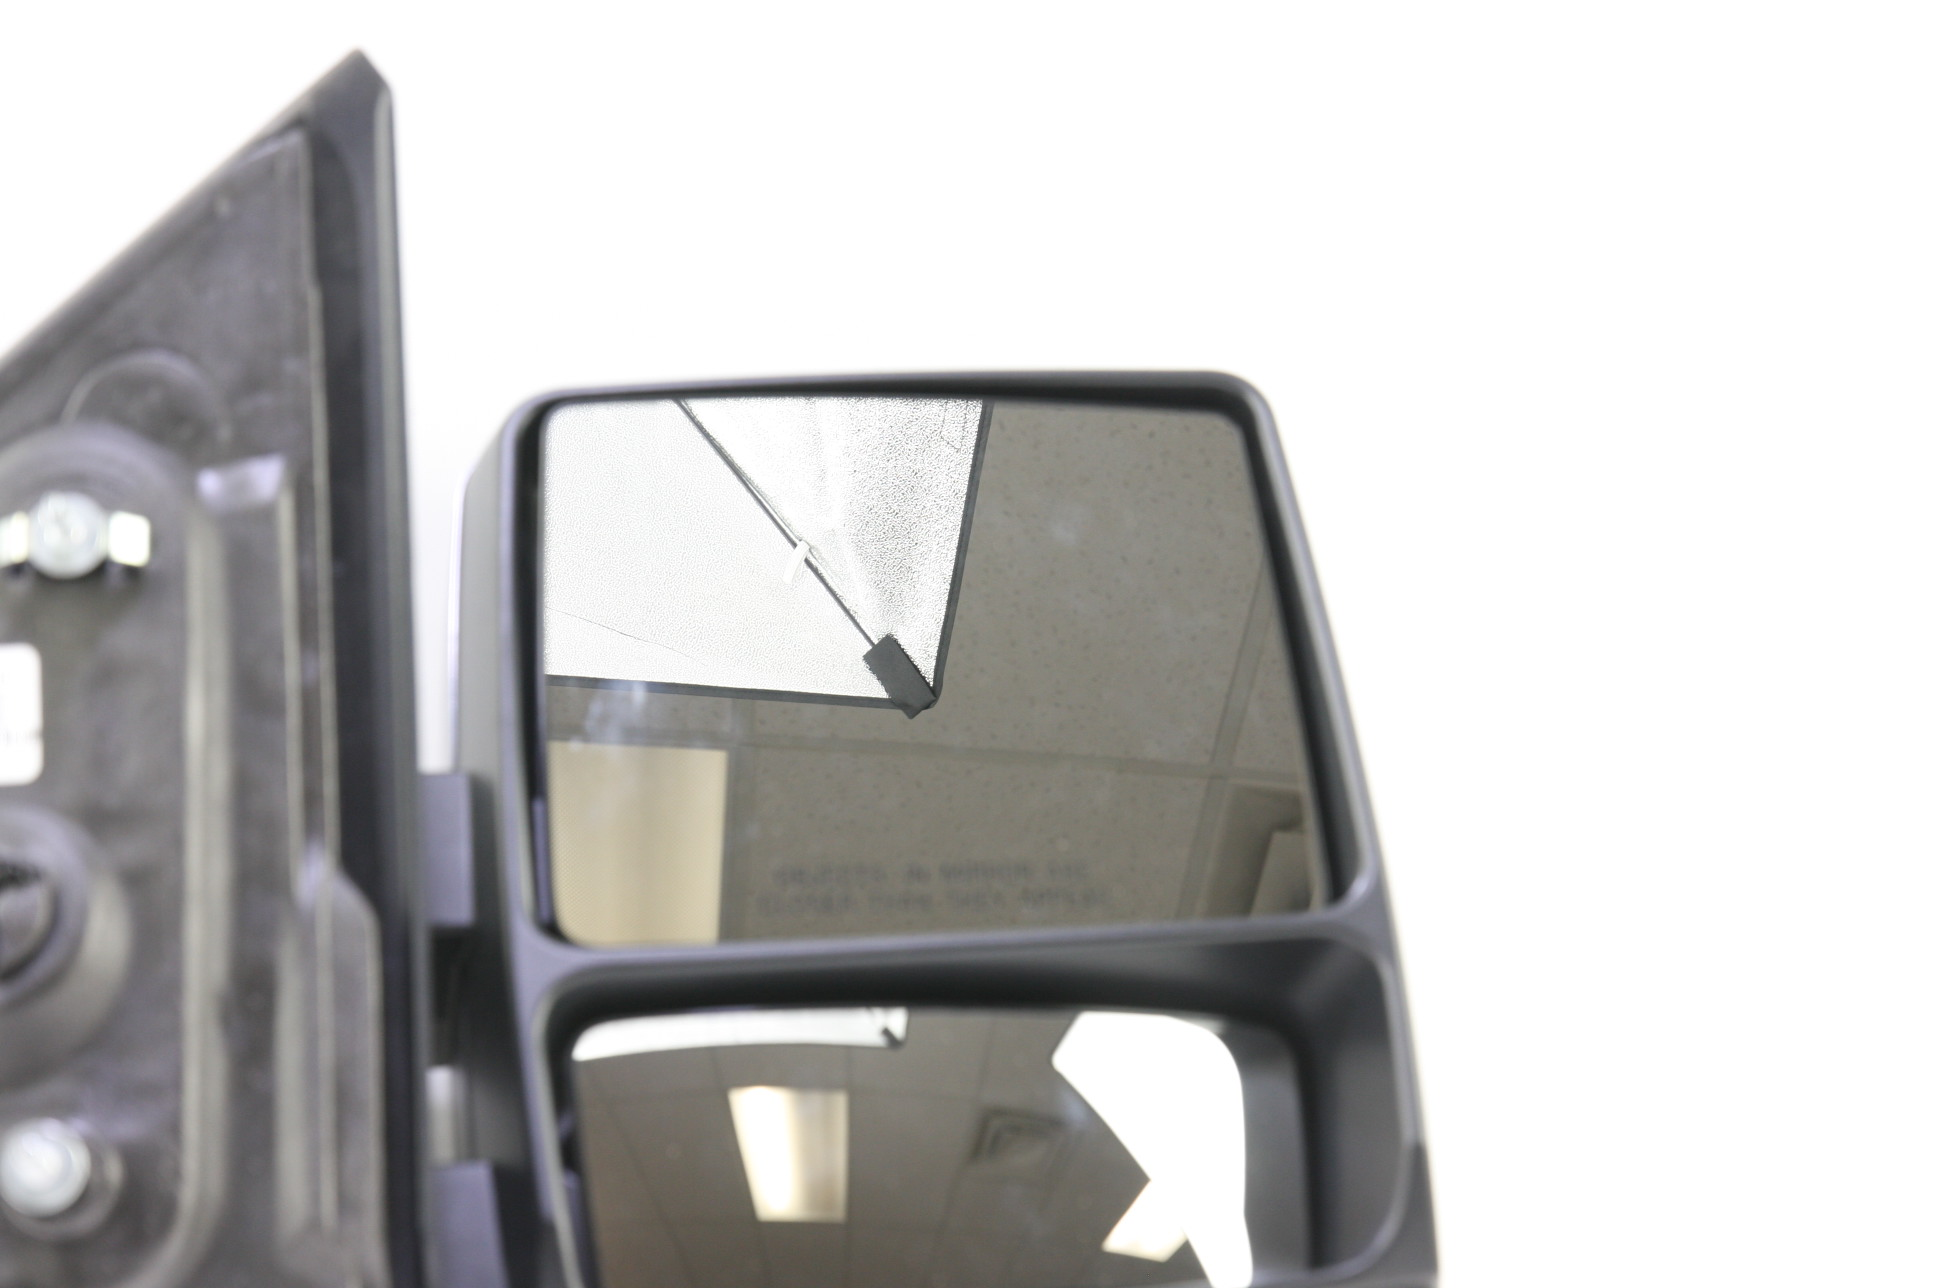 * New OEM 9L3Z17682CAPTM Ford 09-10 F-150 Front Door Side Rear View Mirror Right - image 3